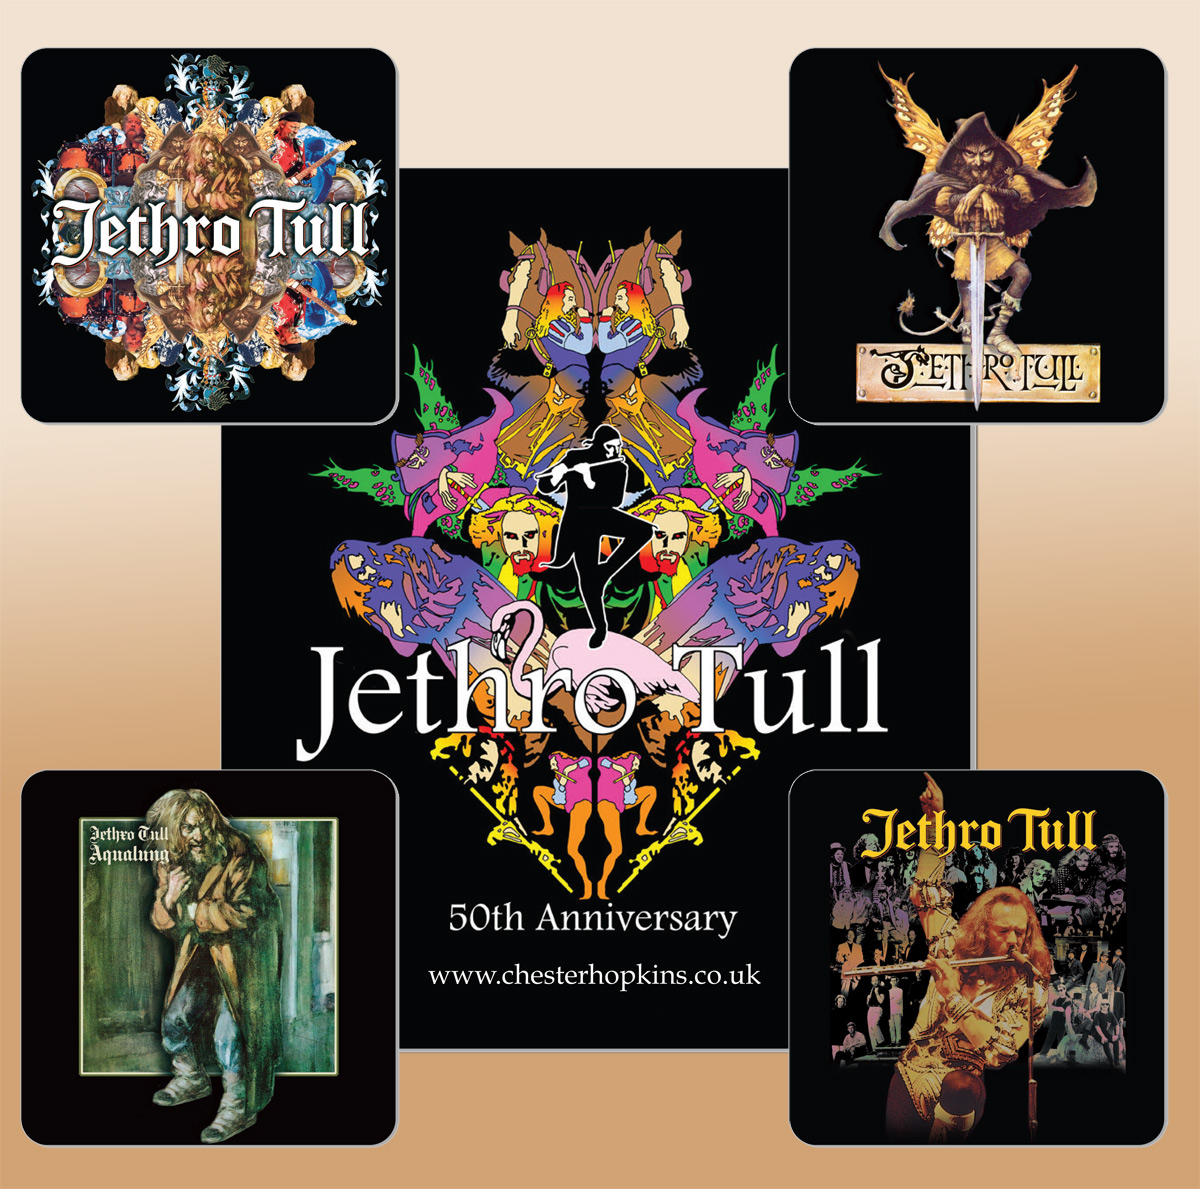 Jethro Tull Mouse Mat & 4 Drinks Coasters featuring designs as shown.